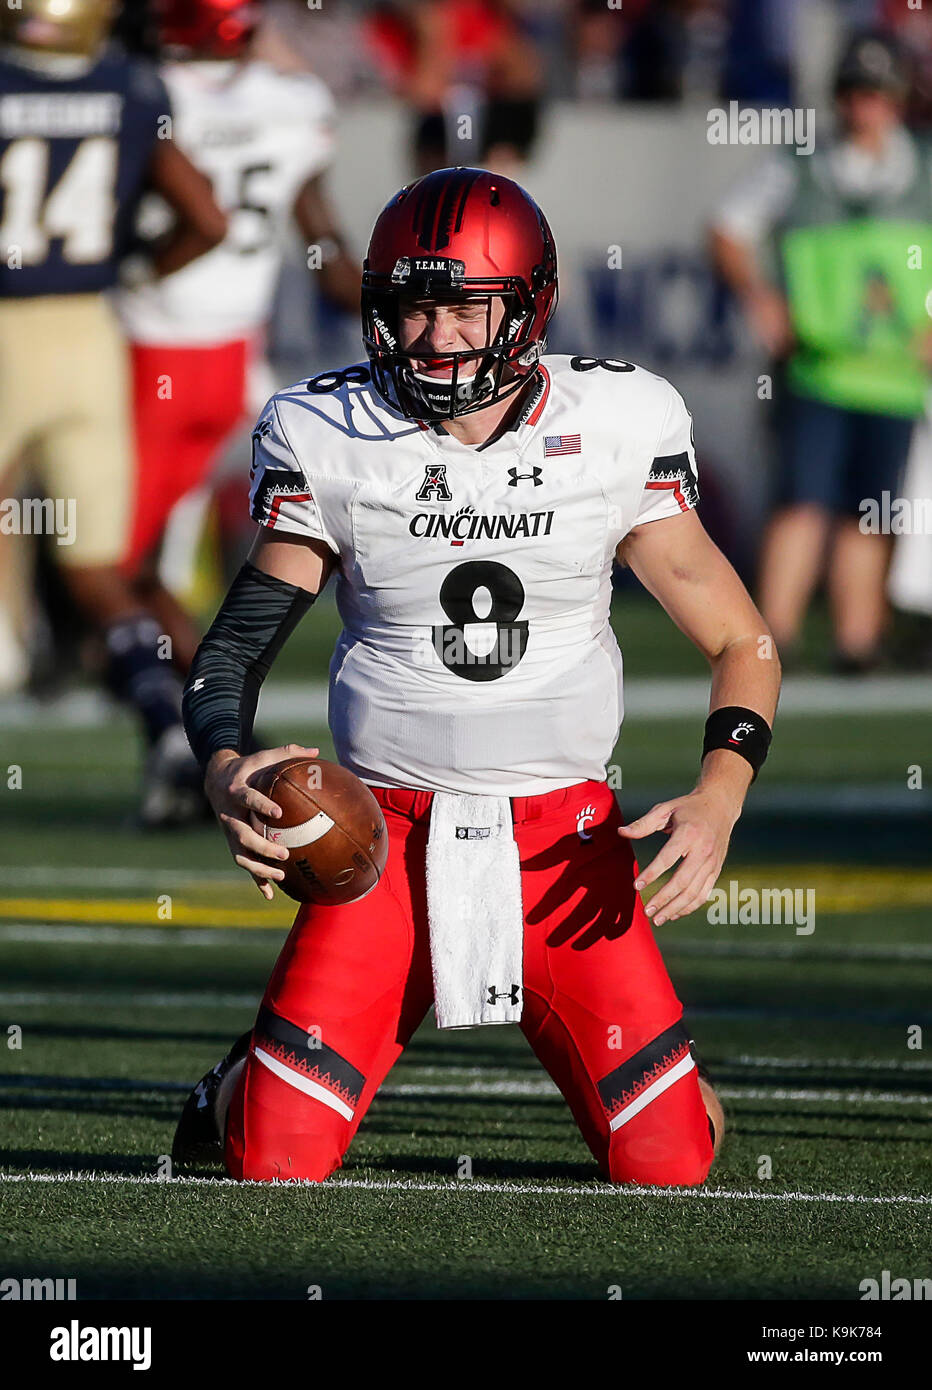 1d9bec33eea224 Cincinnati Bearcats QB  8 Hayden Moore is frustrated after being sacked on  3rd down during a NCAA football game between the United States Naval  Academy ...